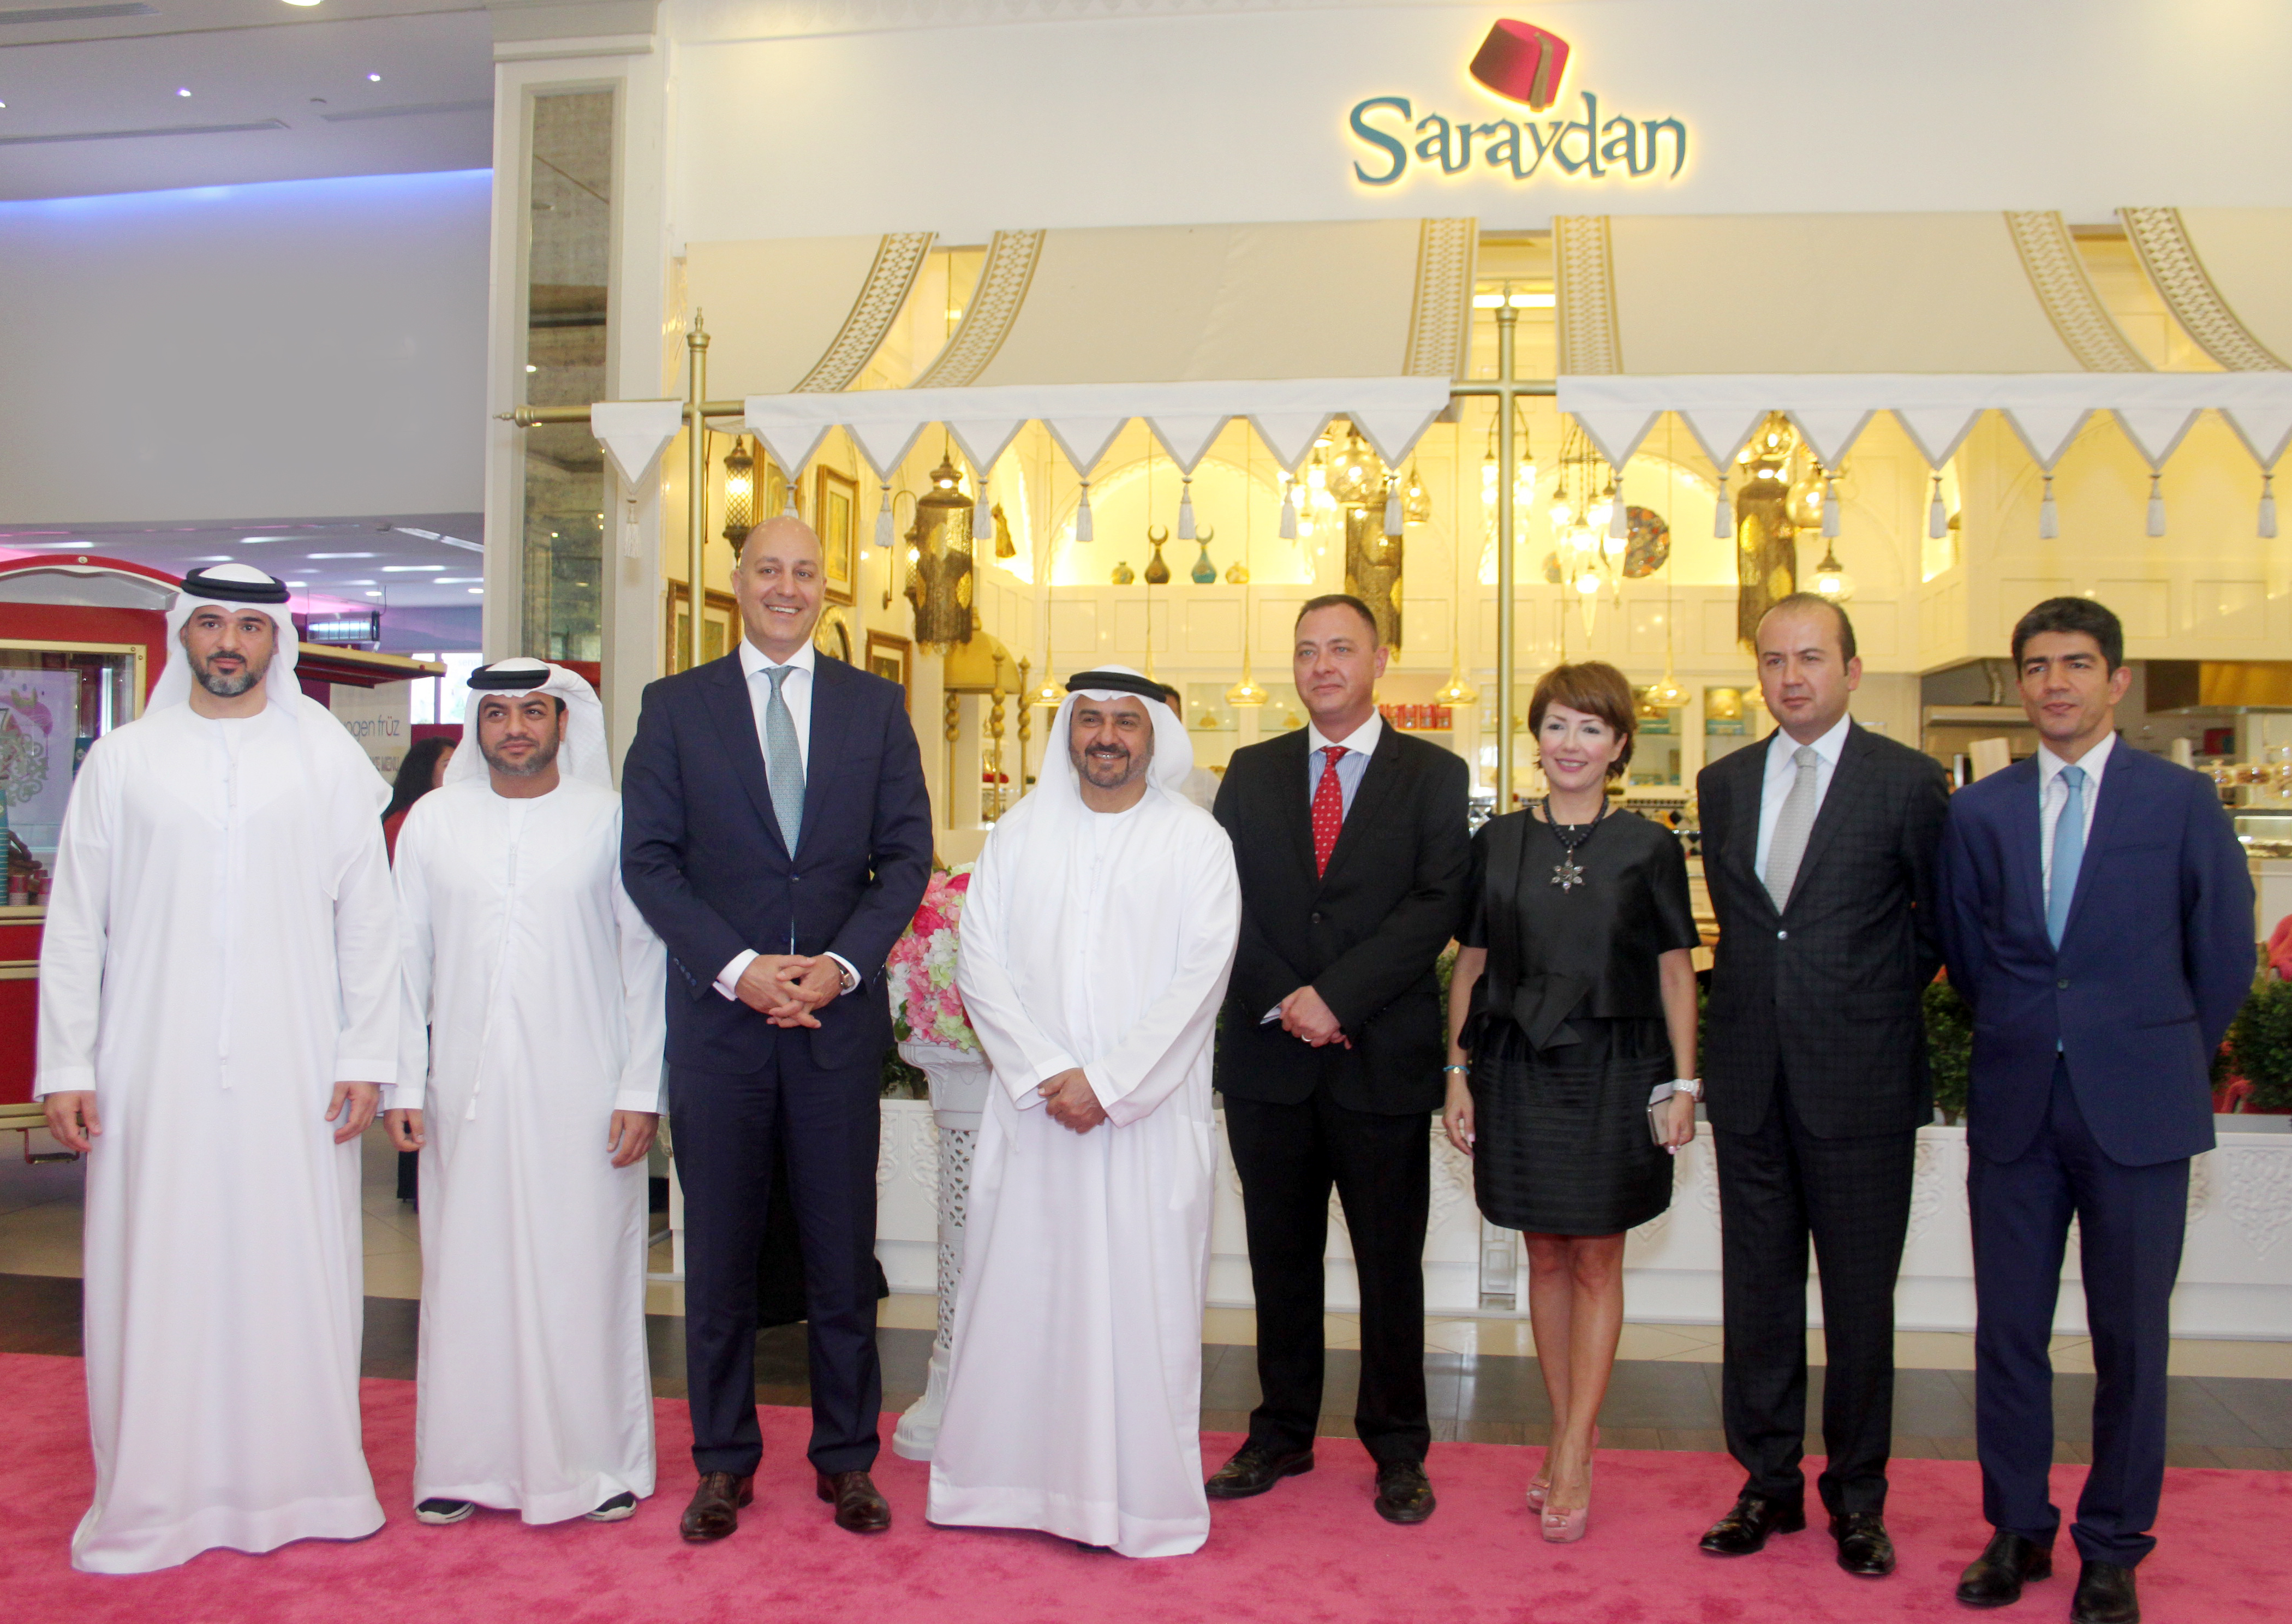 The Saraydan Turkish Café has been launched in Abu Dhabi, with the Turkish Ambassador attending the inauguration ceremony.